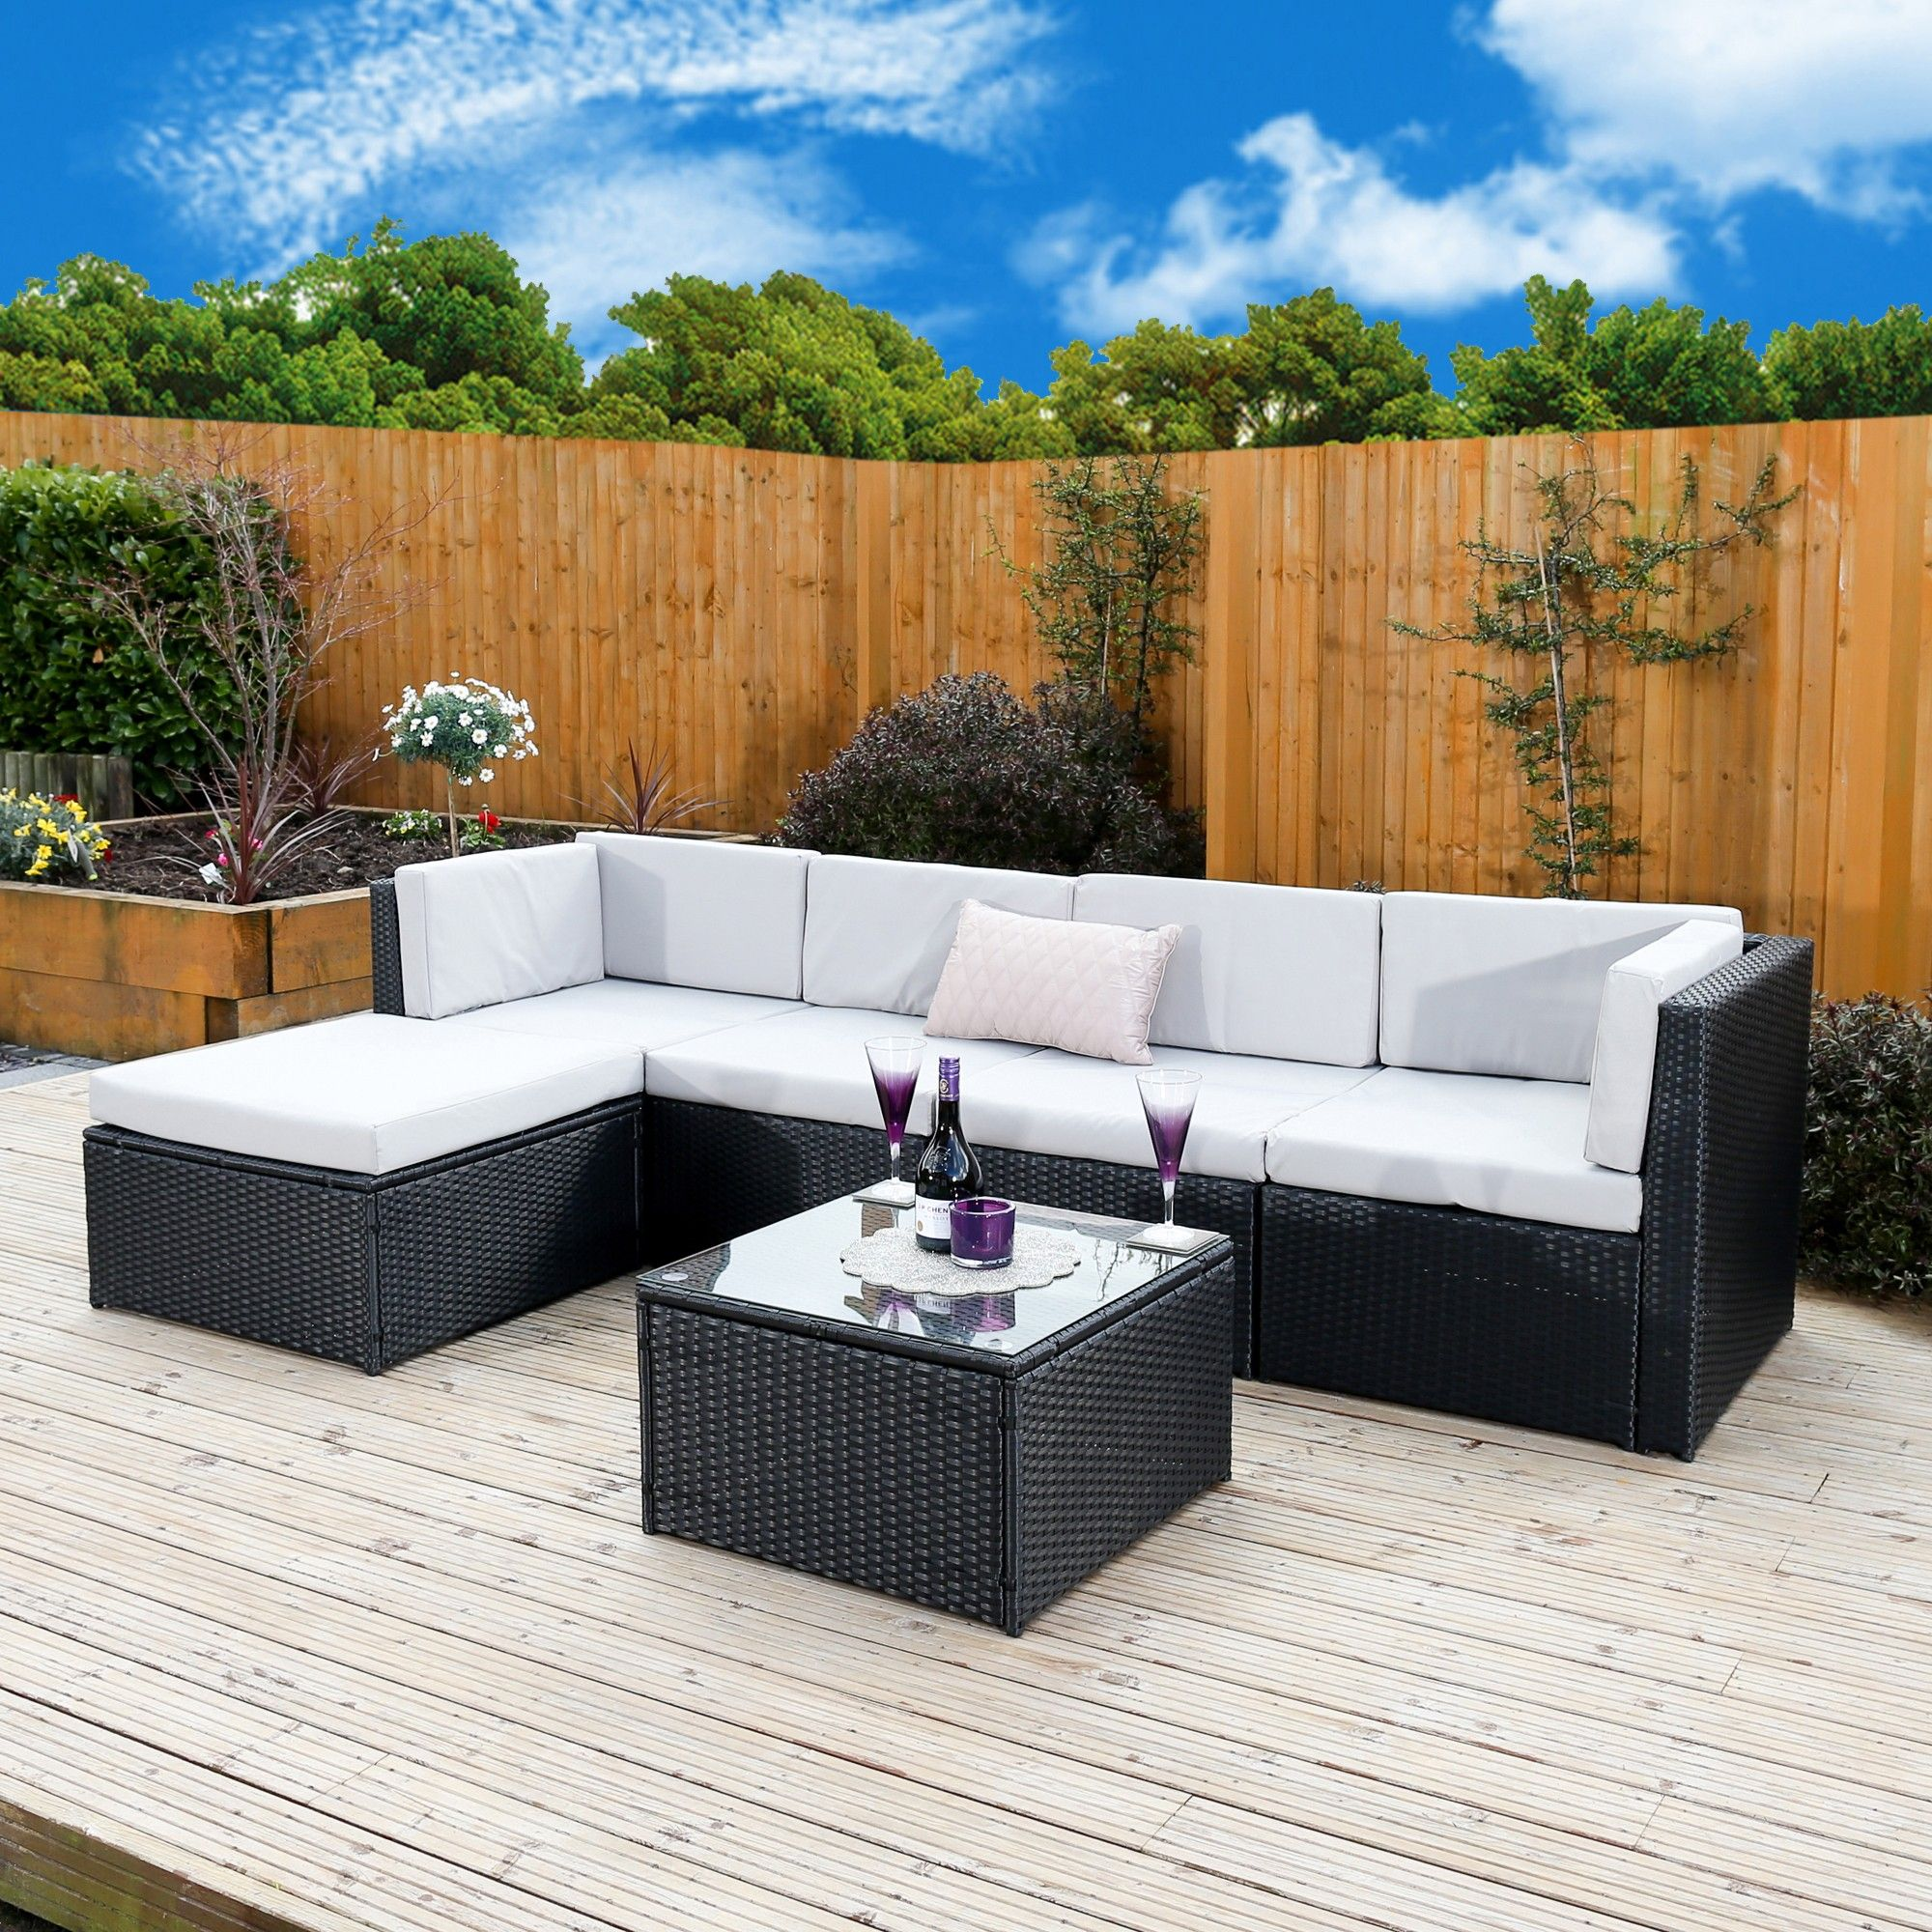 find this pin and more on black rattan garden furniture sets